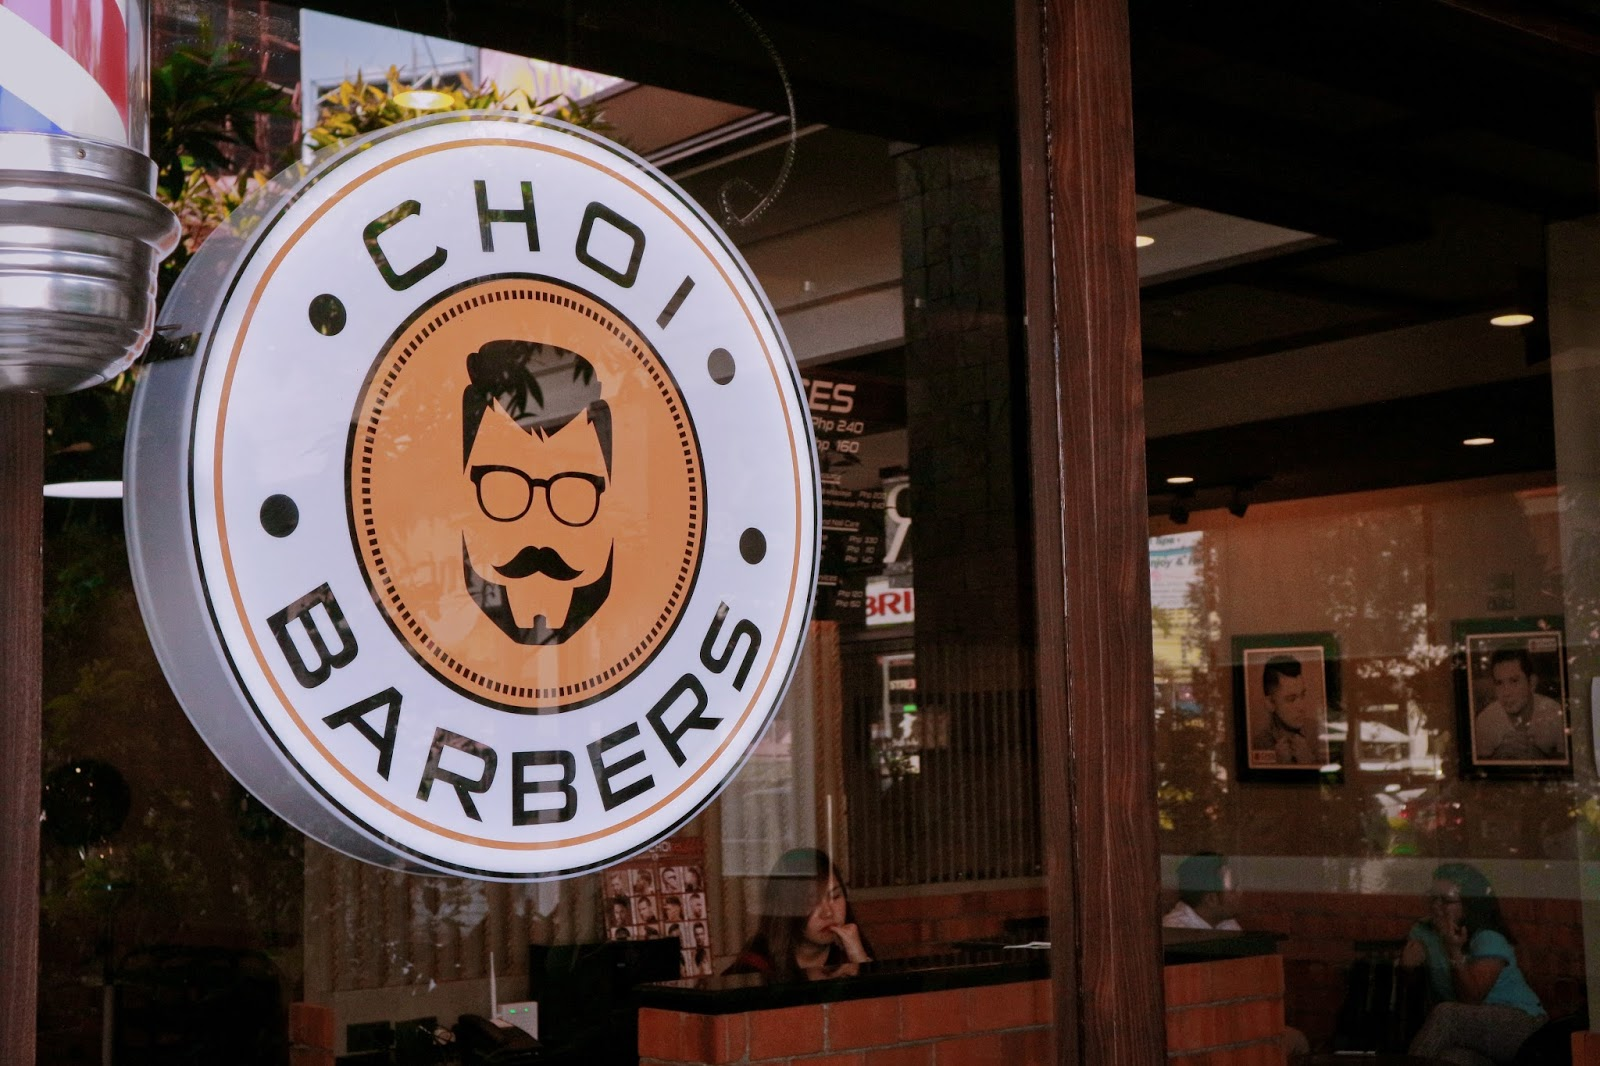 CHOI Barbers - Your Ultimate Grooming Choice